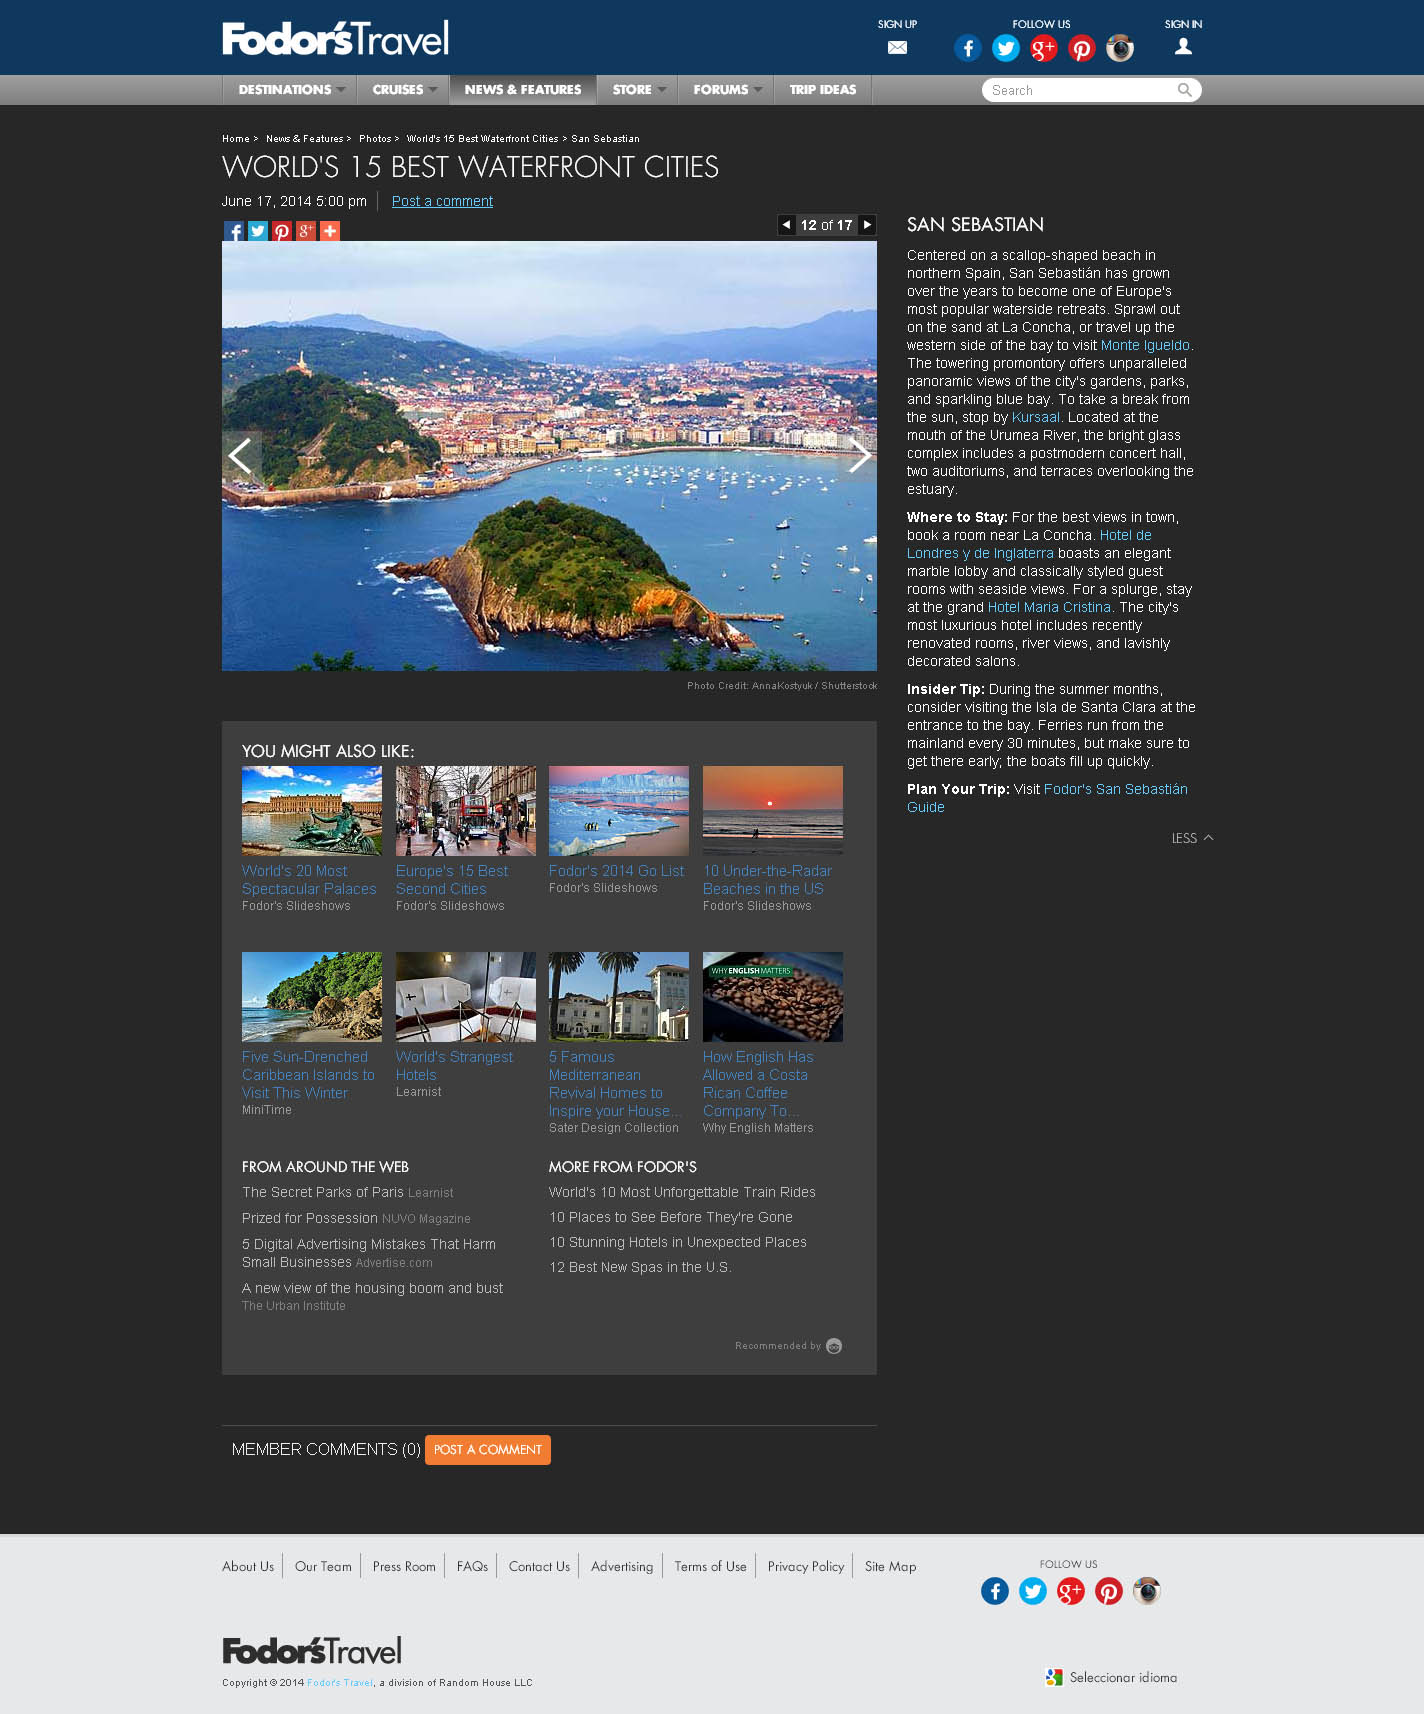 san-sebastian-worlds-15-best-waterfront-cities-fodors